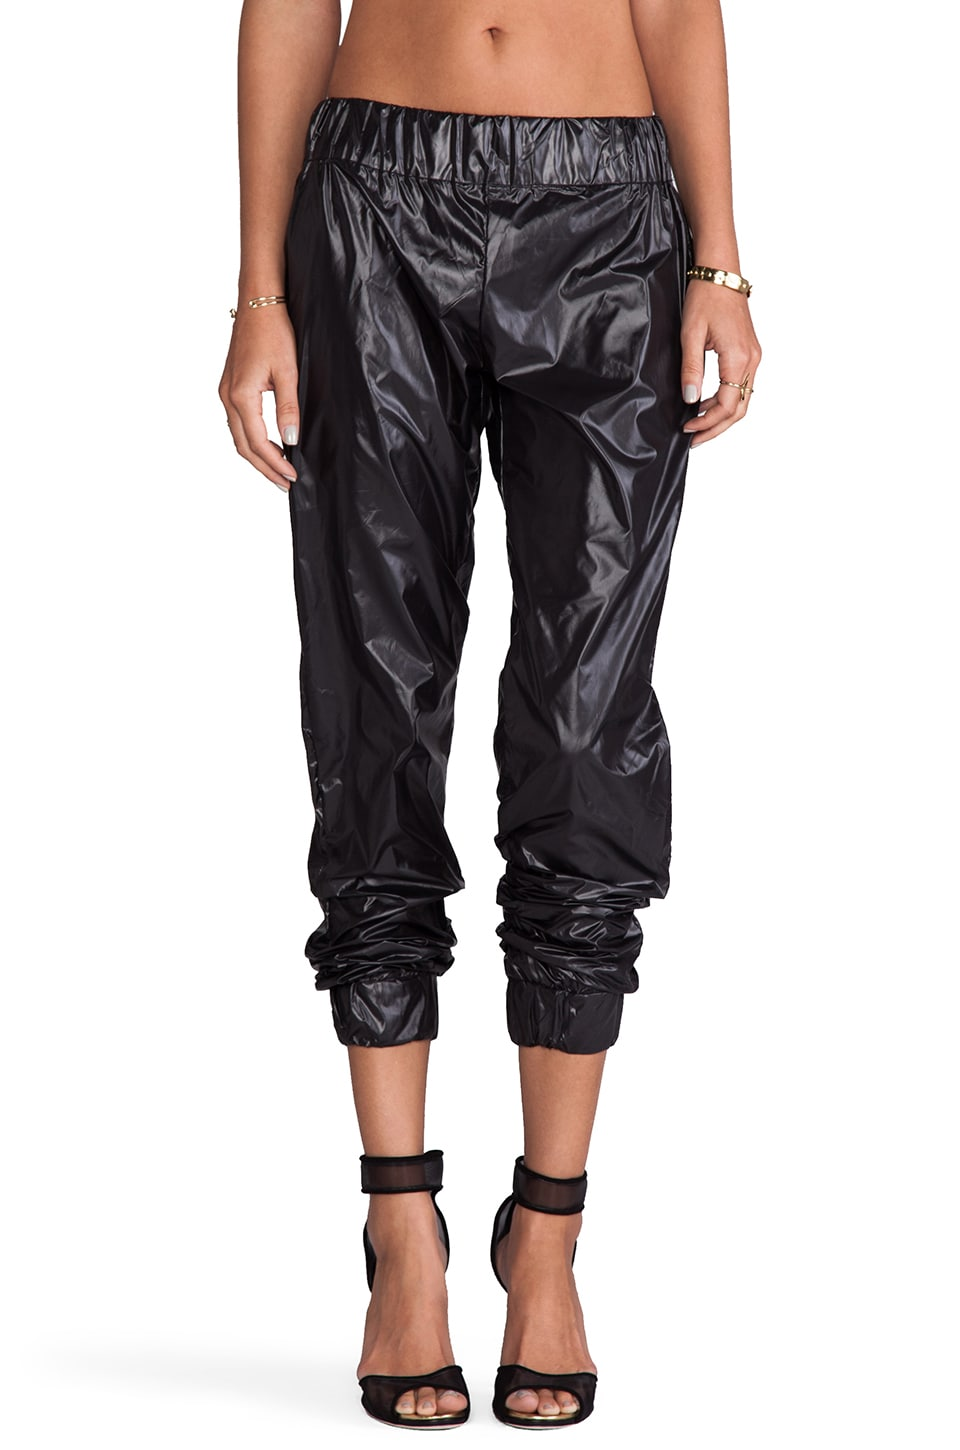 MAX FOWLES Sport Pants in Black Shiny